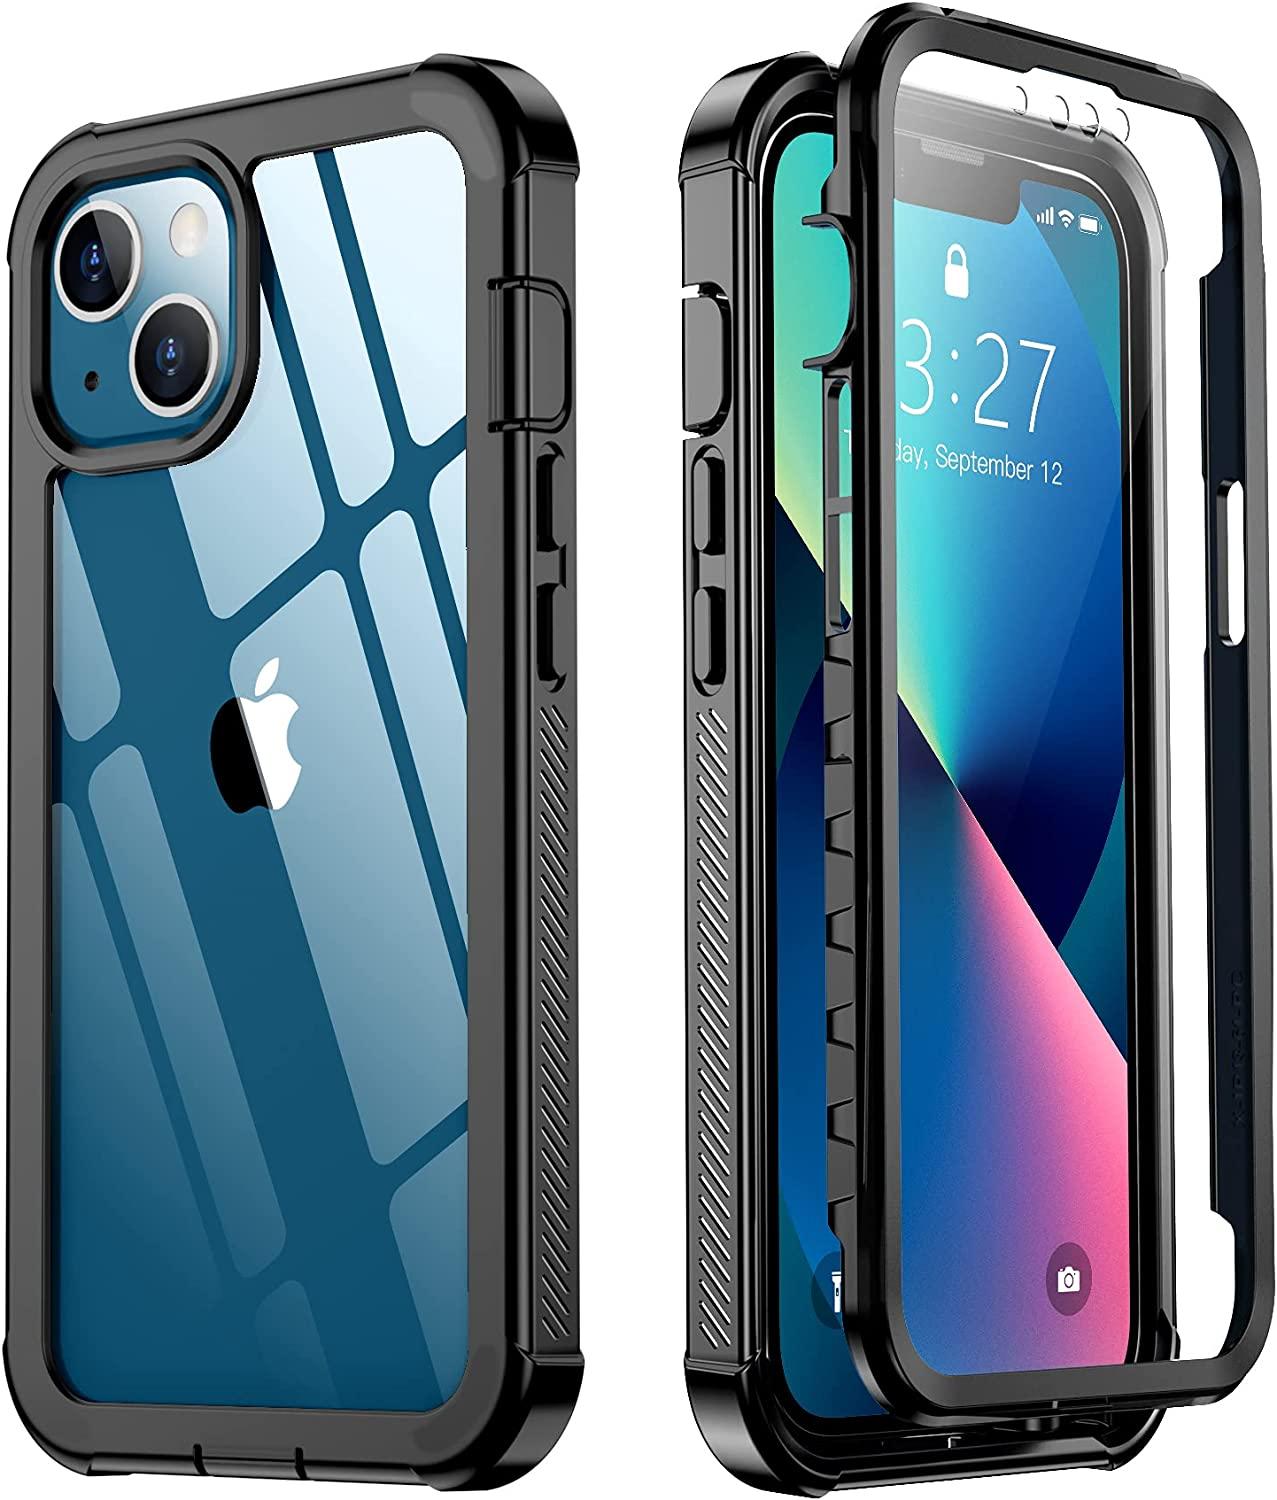 Red2Fire Designed for iPhone 13 Case, with Built-in Screen Protector 360° Full Body Protective Cover Heavy Duty Lightweight Slim Shockproof Clear Phone Case for iPhone 13 6.1 inch